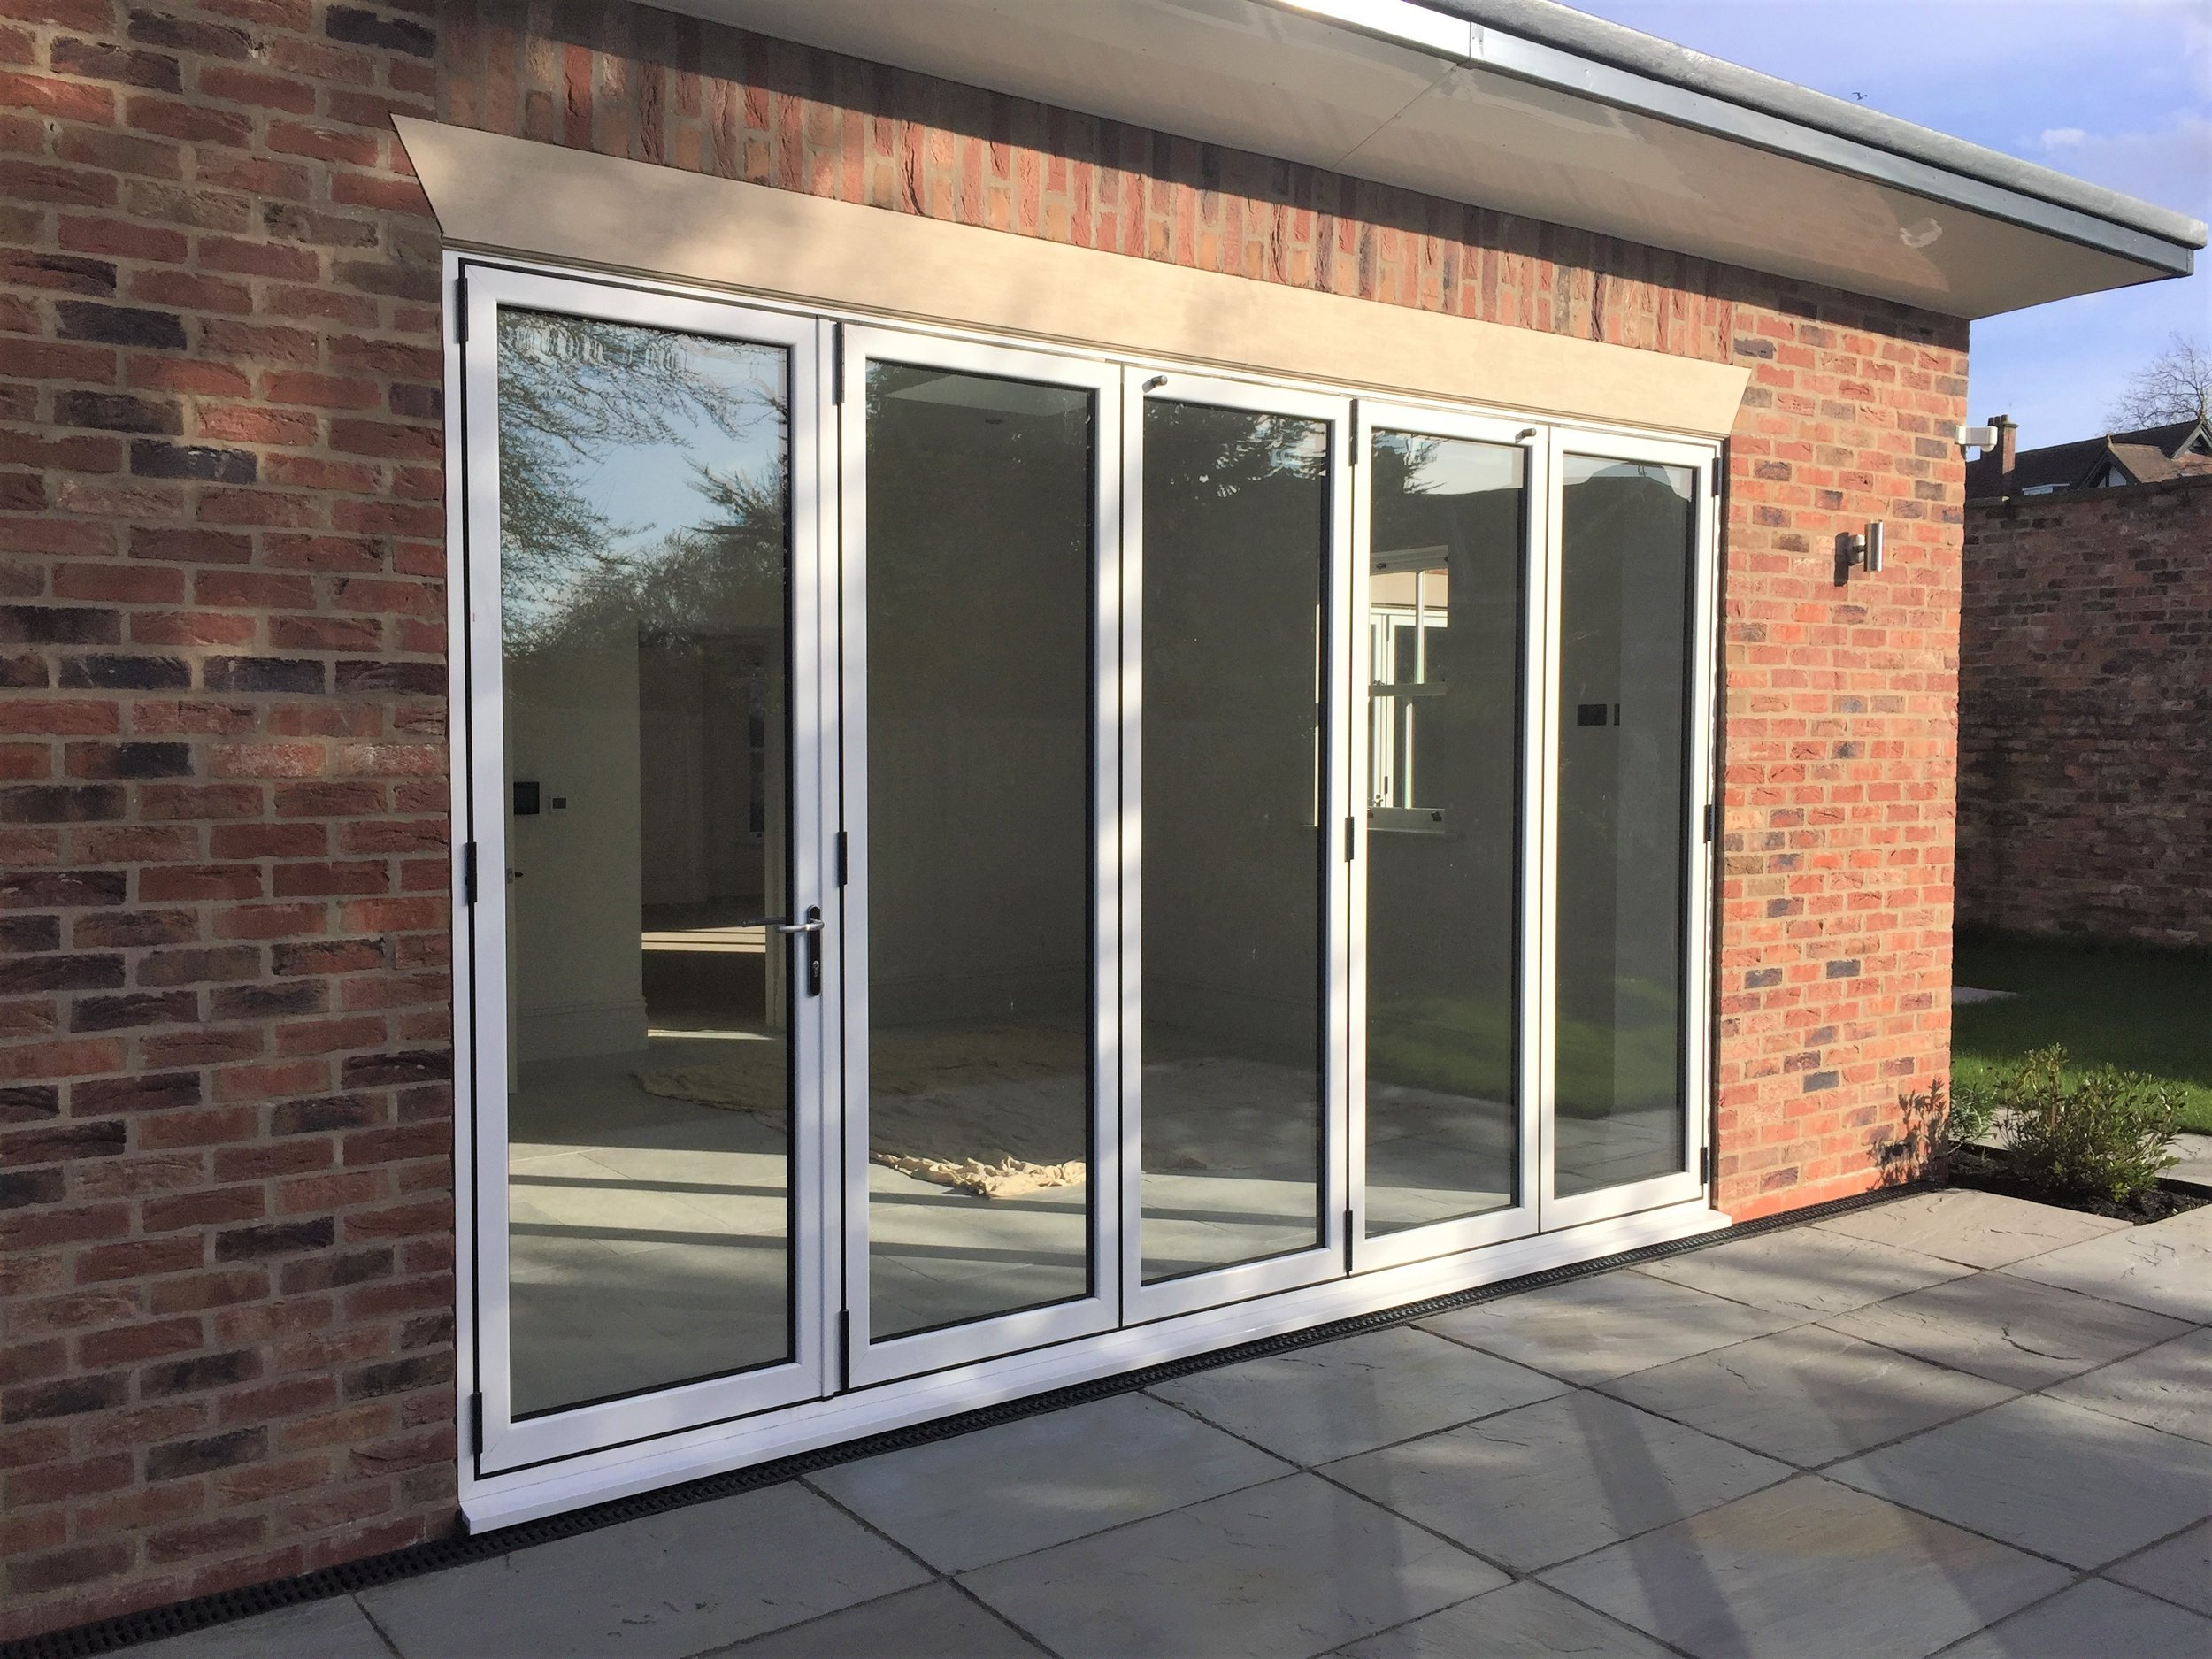 Revolutionary Warm-Core Folding Sliding Doors. - The beautiful, strong and secure door that's 25% more thermally efficient than the competition.Take a look at the Warm-Core brochure here for more information.